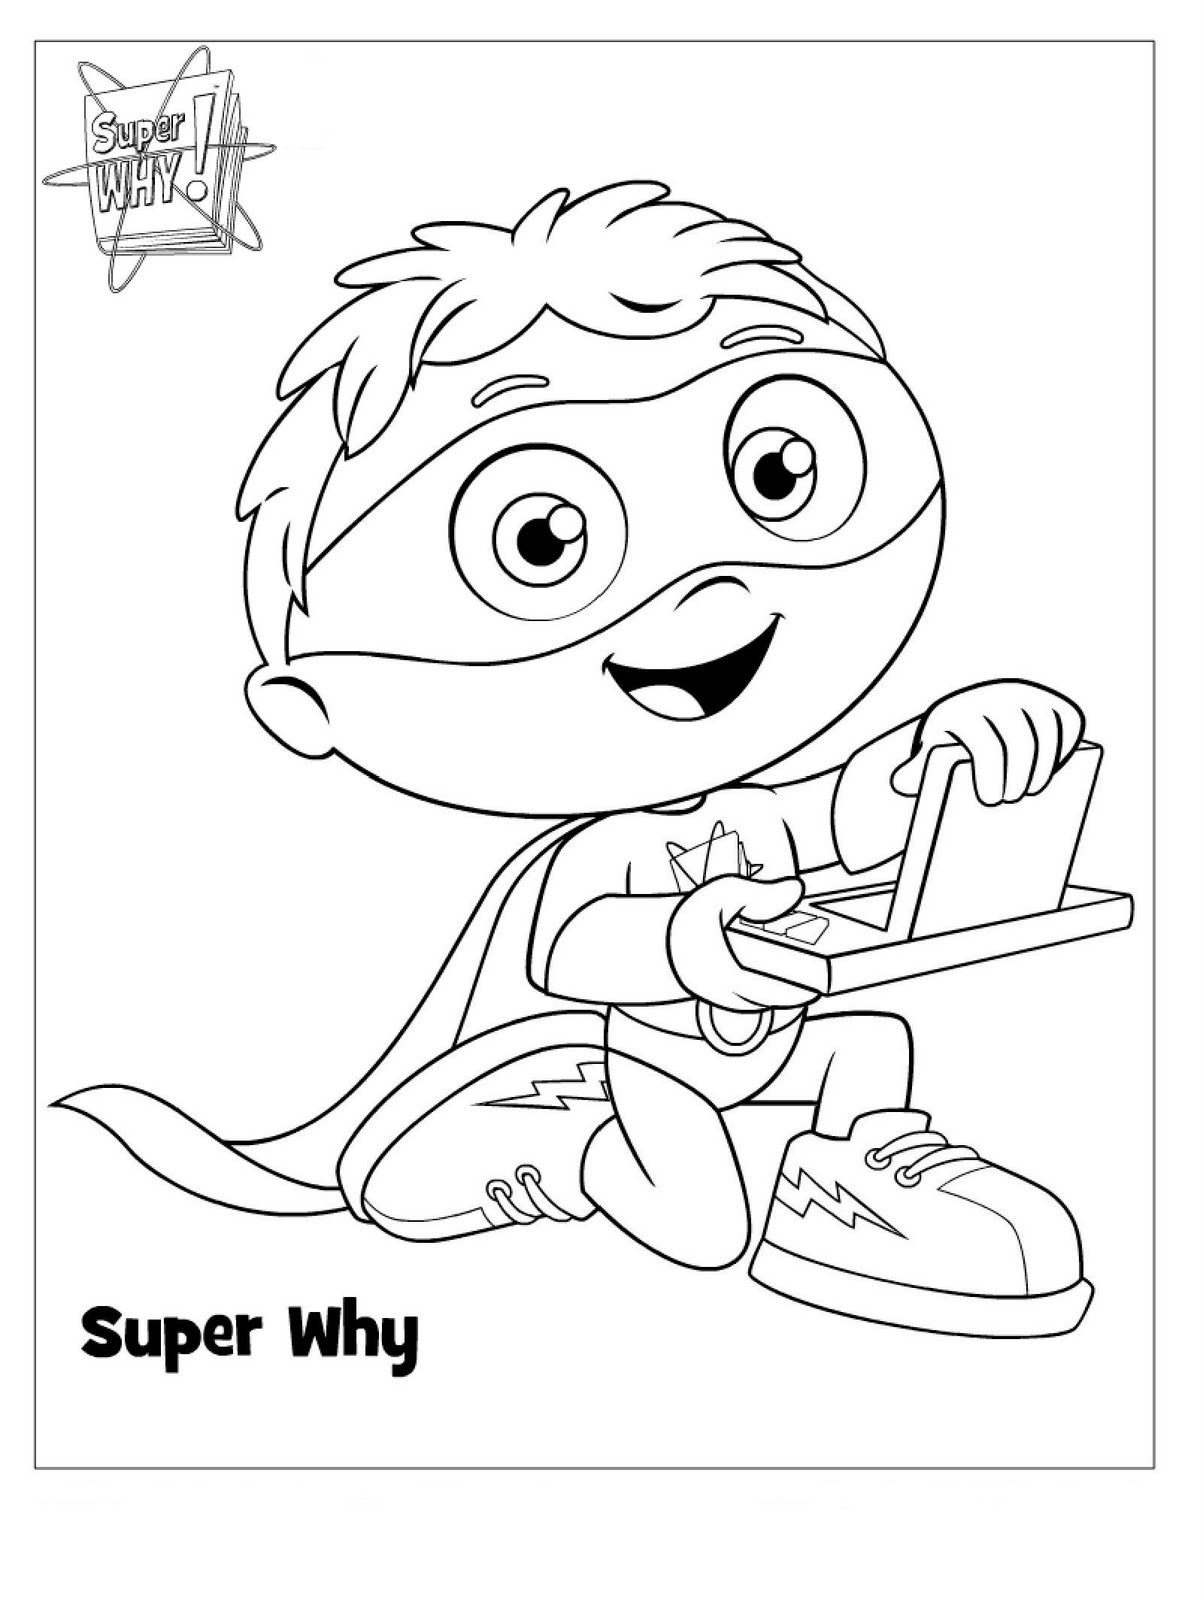 kids coloring pages - super why coloring pages best coloring pages for kids